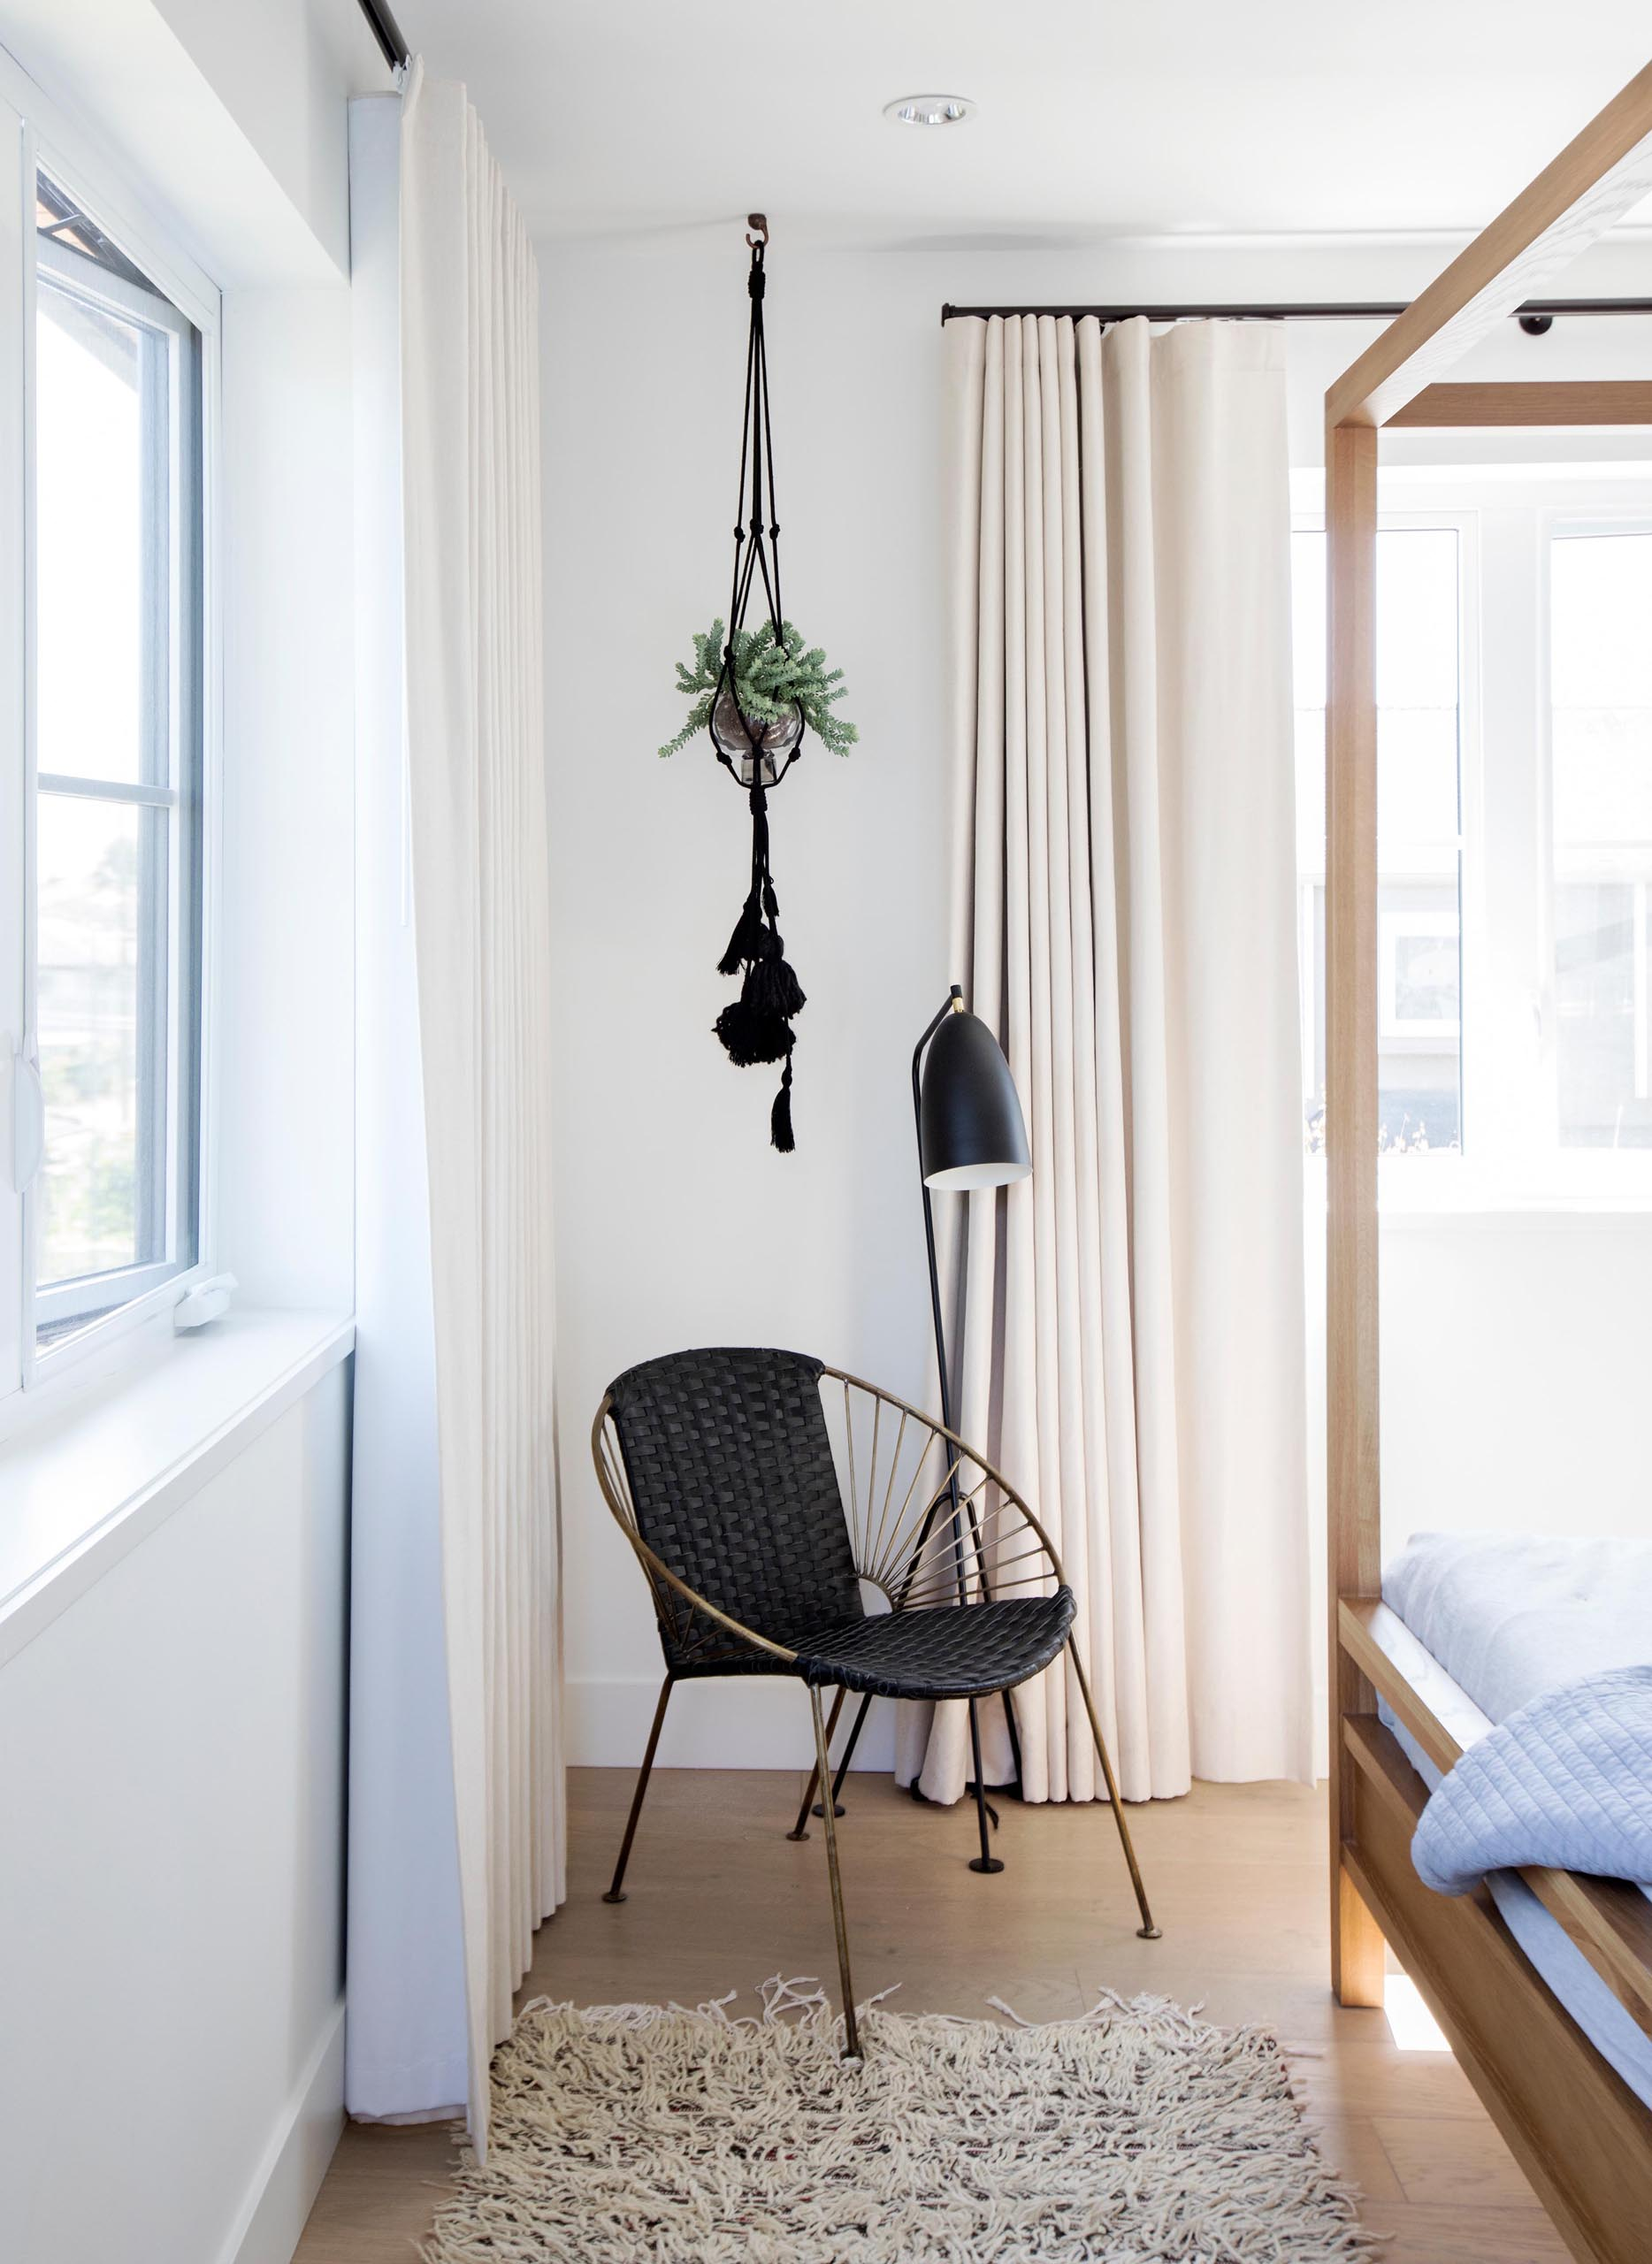 A modern bedroom with a black accent corner furnished with a hanging plant, black floor lamp, and black chair.